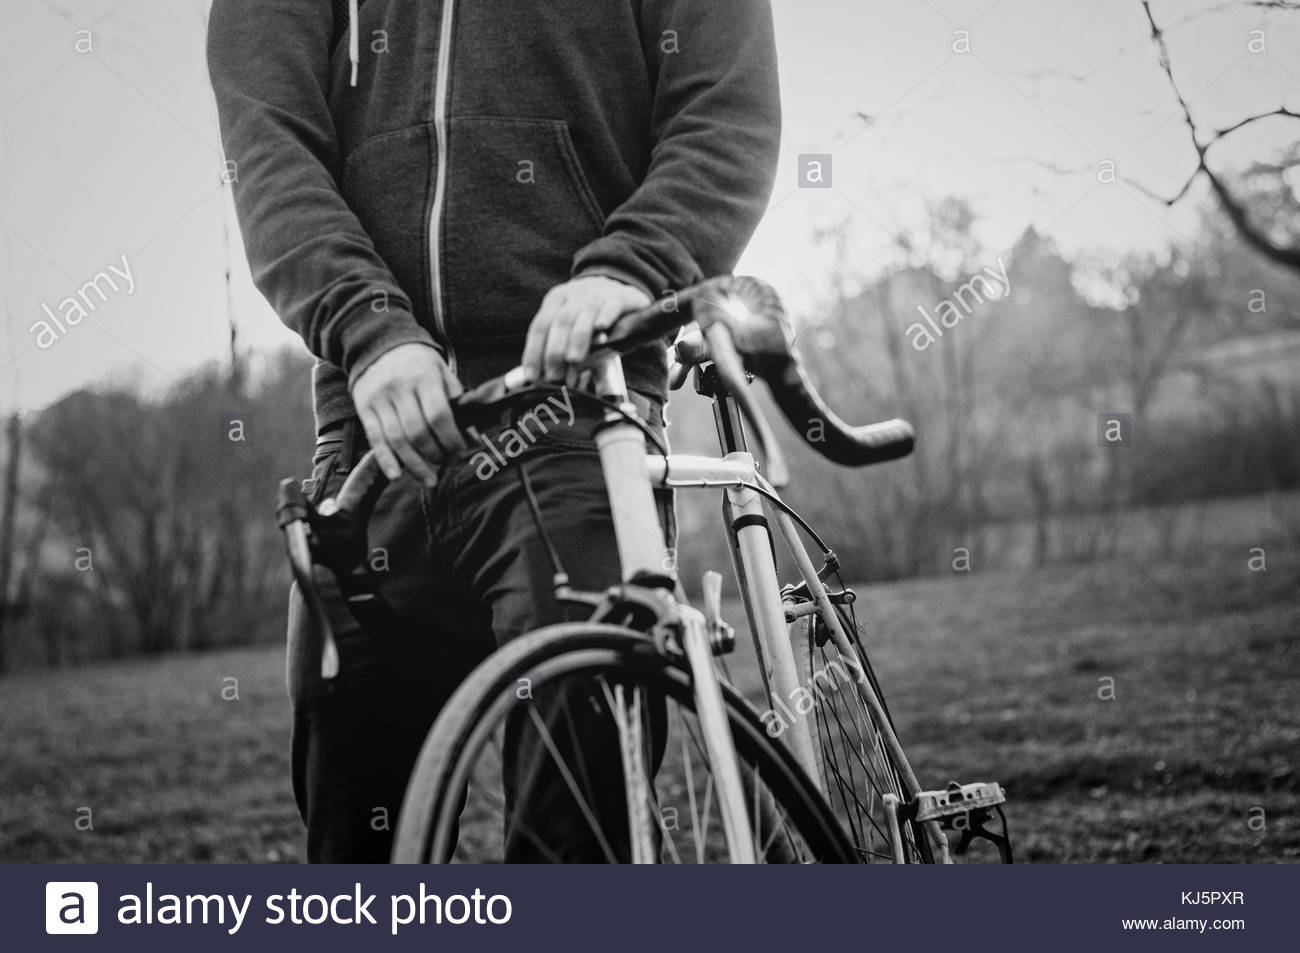 Man holding a bike on grass - Stock Image